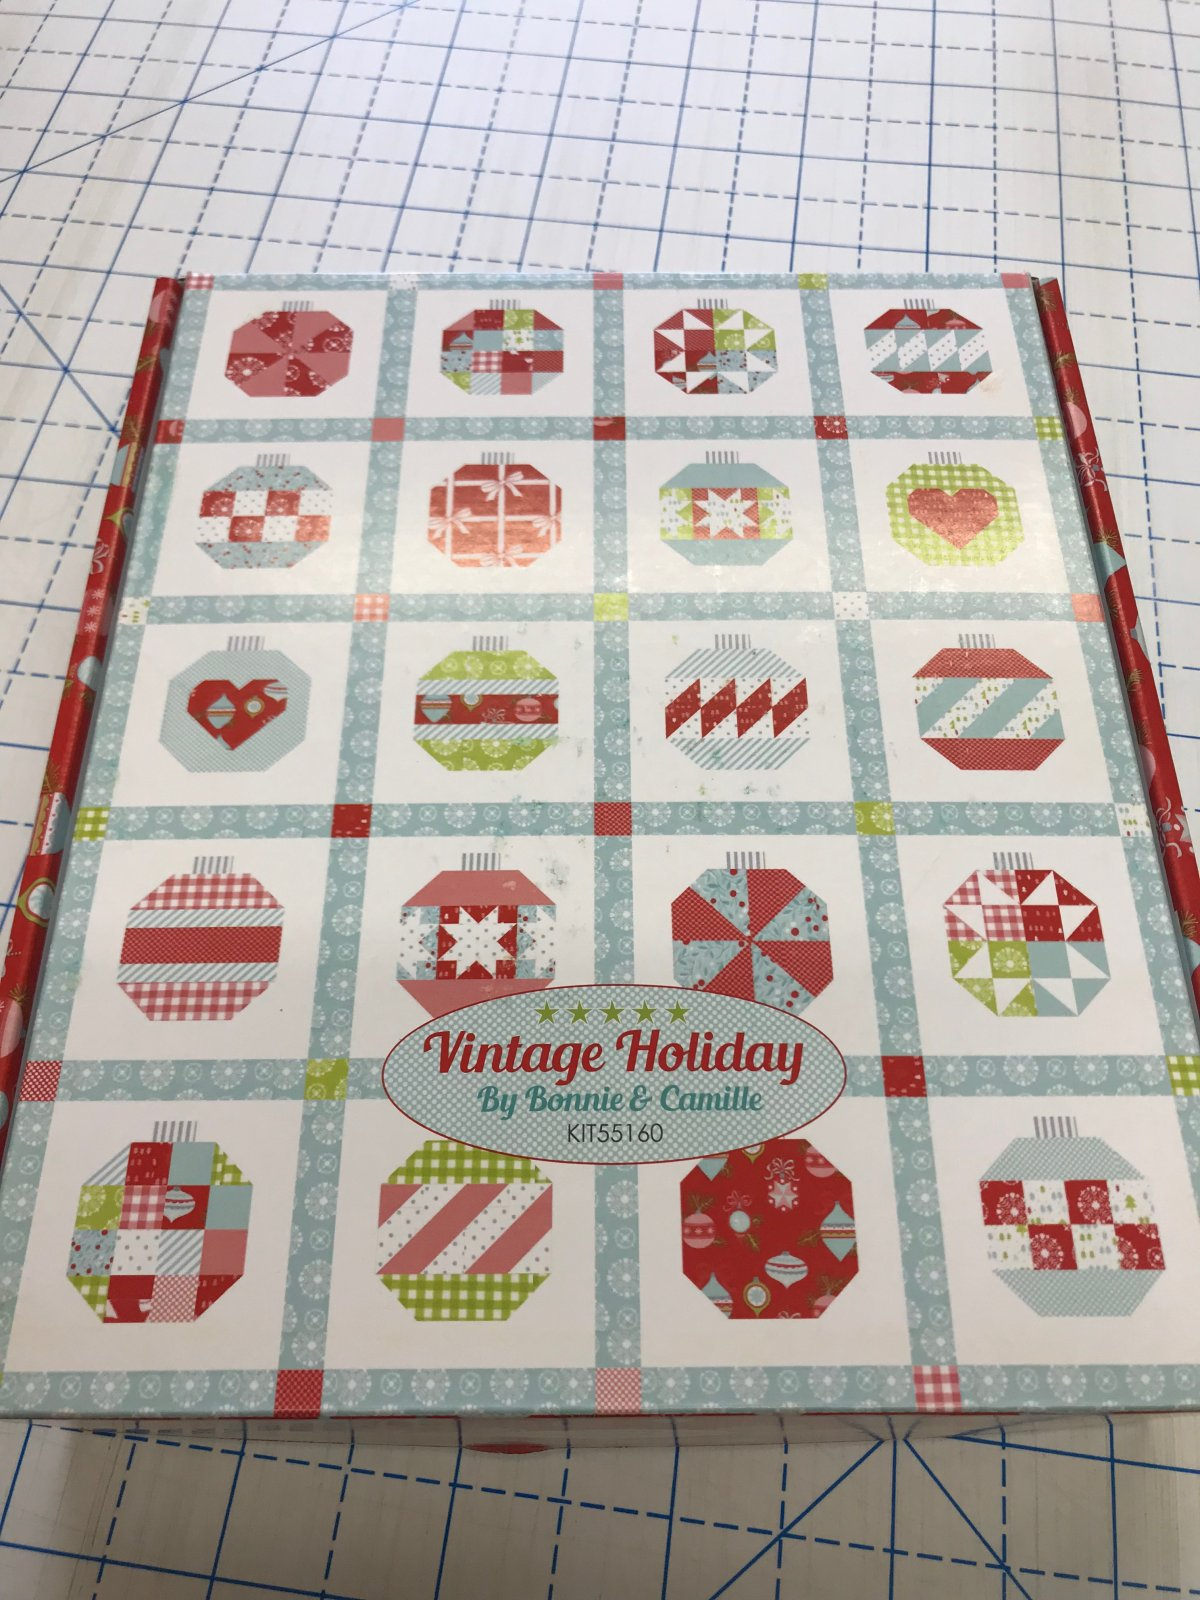 Vintage Holiday 2 Quilt Kit by Moda & Camille Roskelly